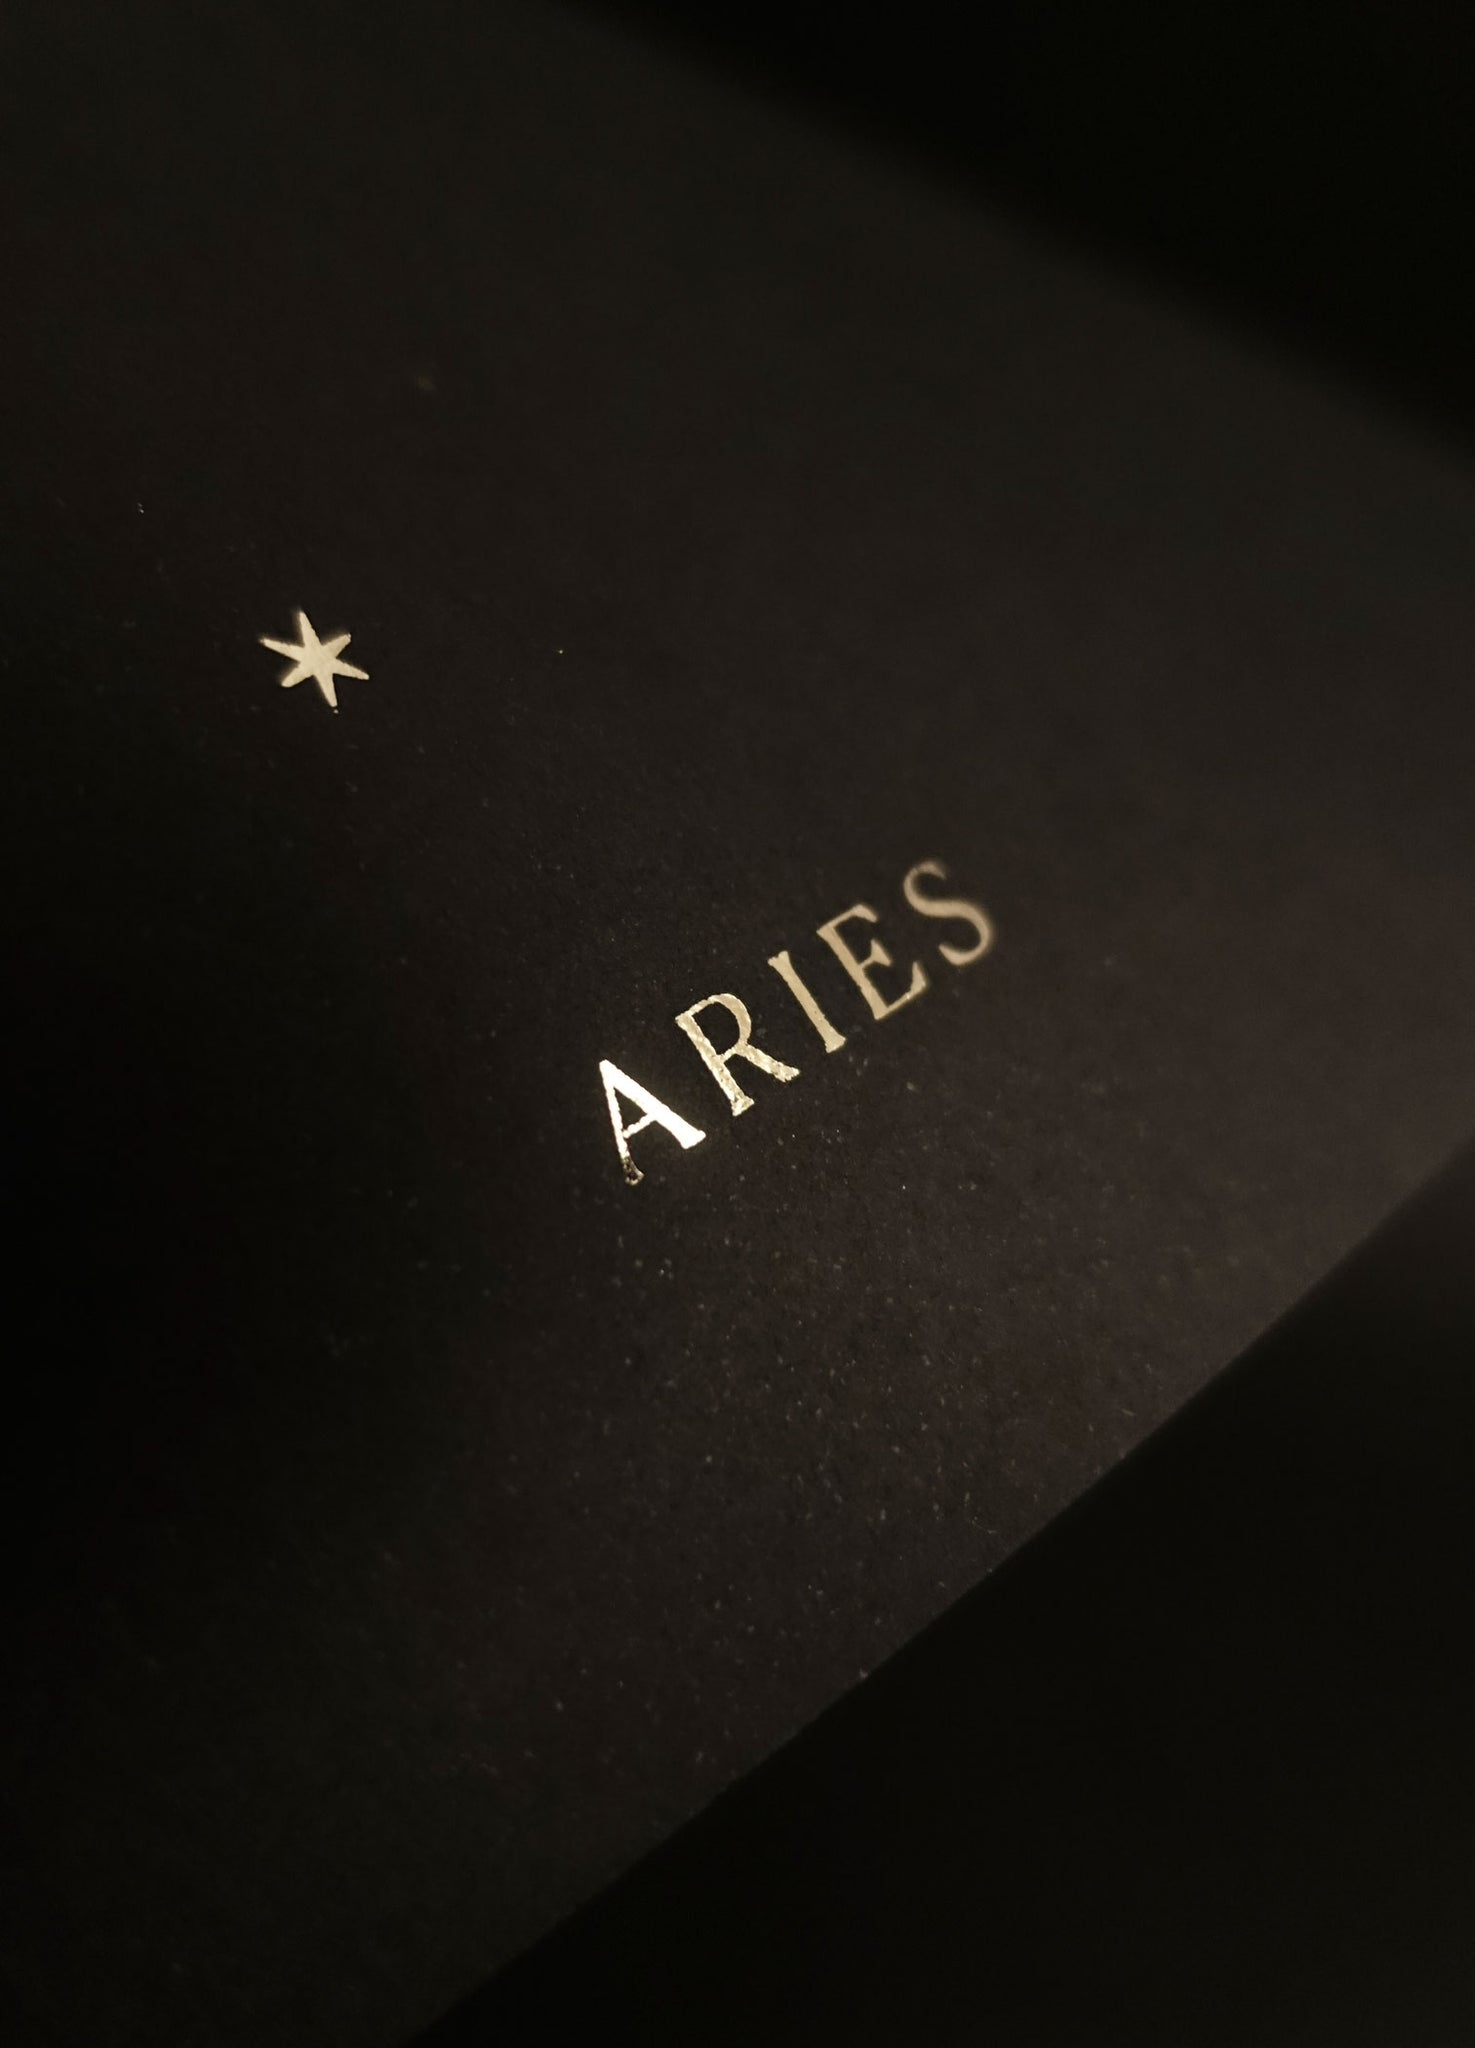 Aries zodiac constellation gold metallic foil print on black paper by Cocorrina